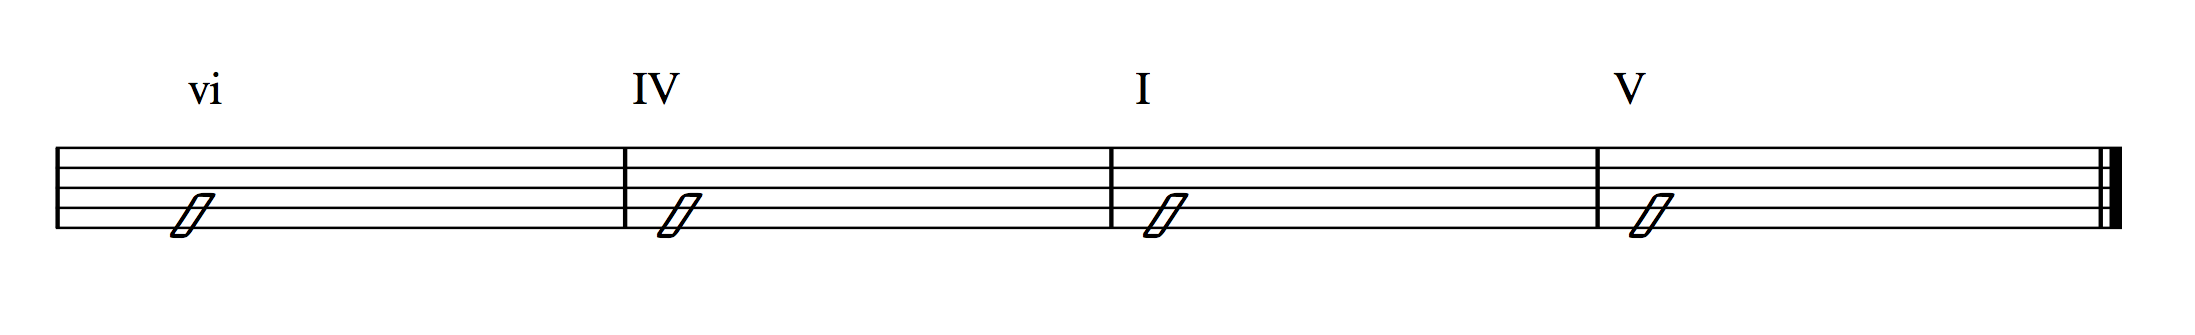 How To Figure Out The 7 Chords In Any Key